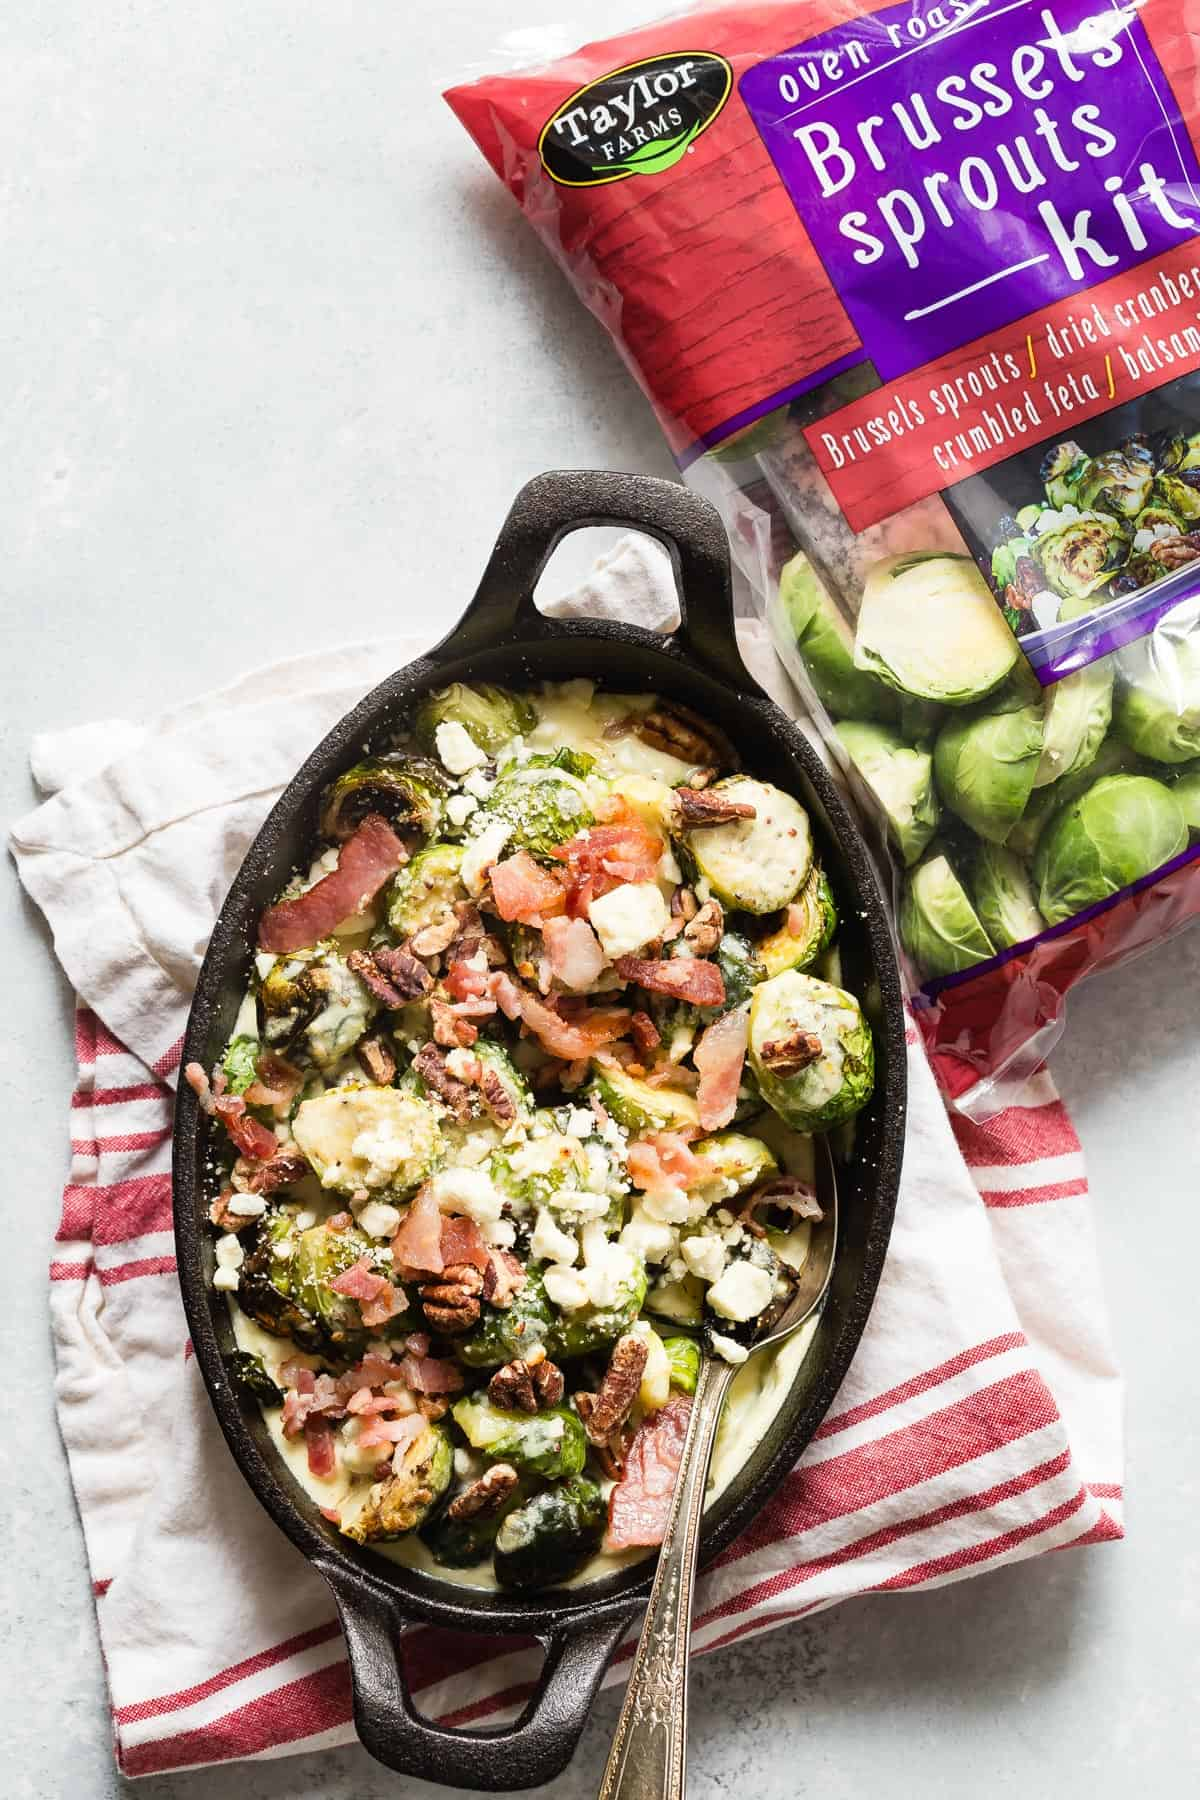 Crispy Roasted Brussels Sprouts Gratin with chunks of crispy bacon, feta cheese and balsamic vinegar. This creamy side dish will work well beside any main course!